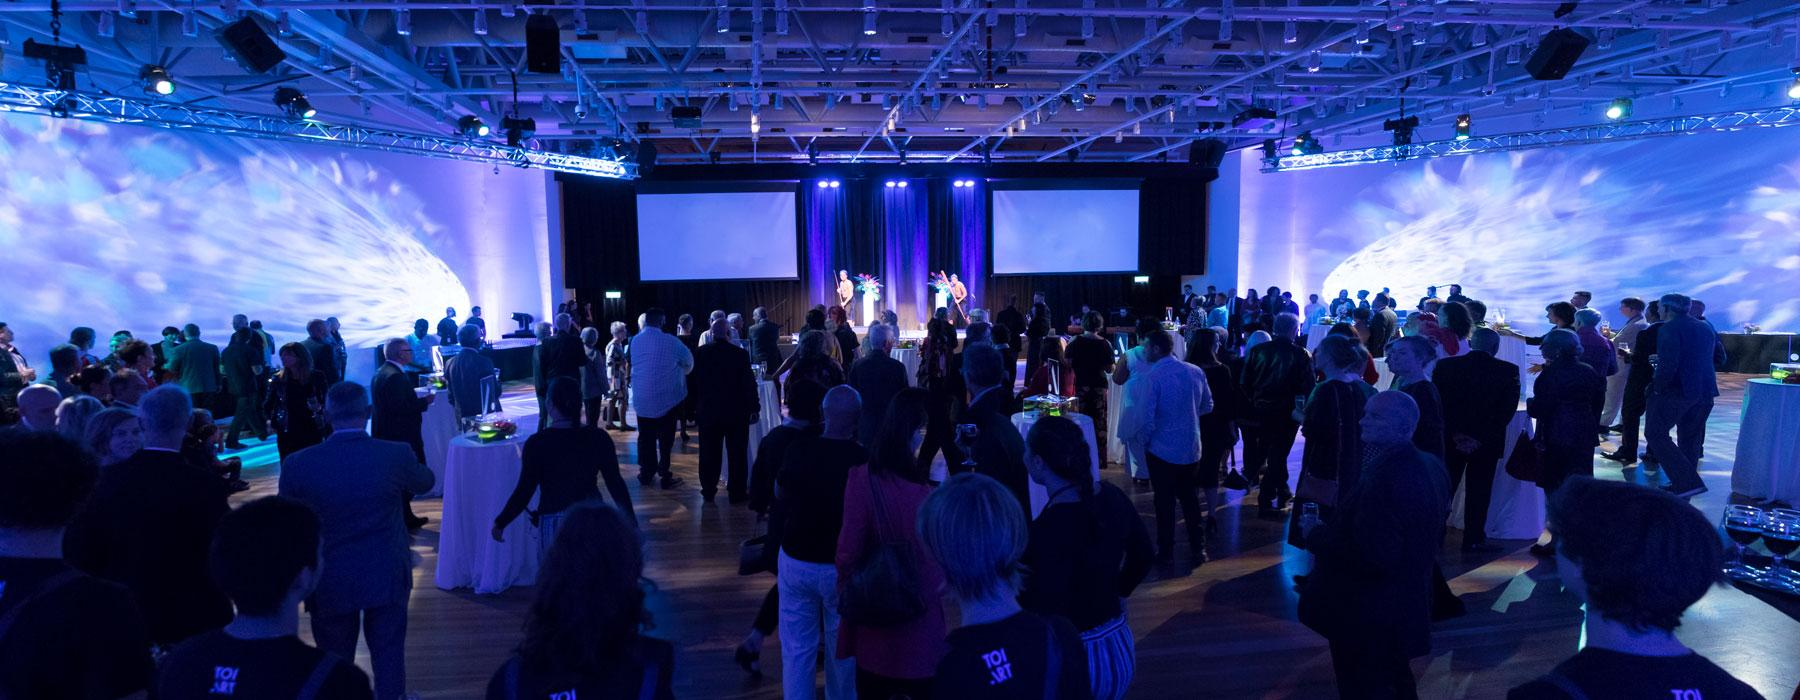 Blue lit function room with lots of people standing